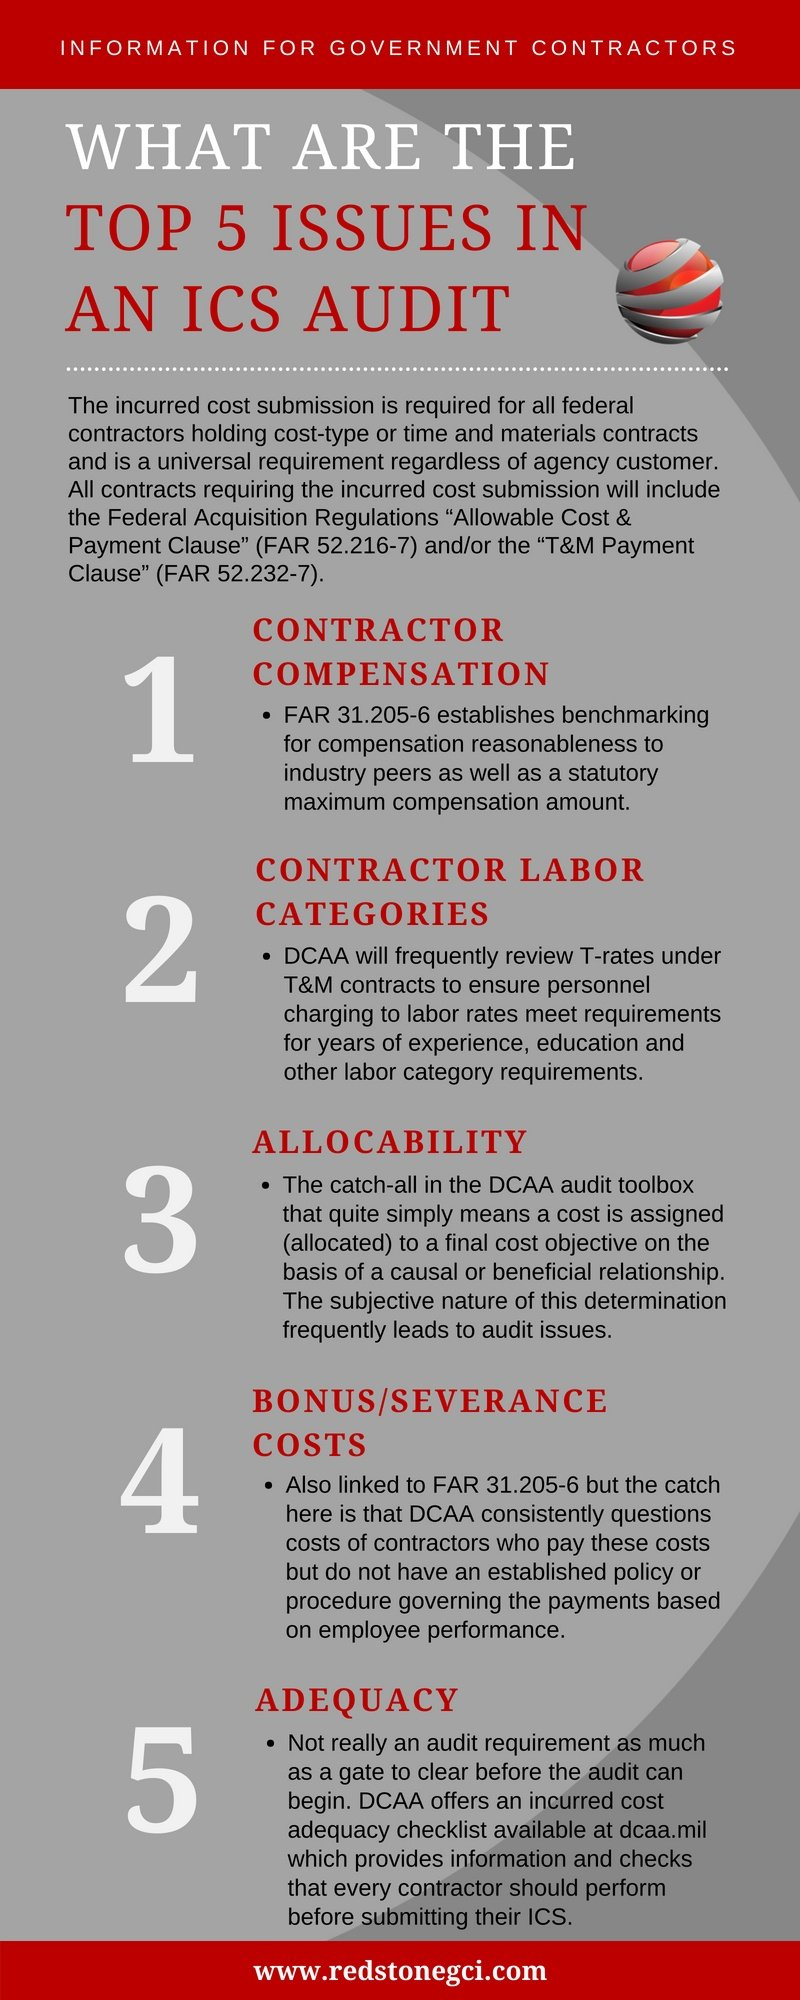 RGCI-What are the Top 5 Issues in an ICS Audit-Infographic